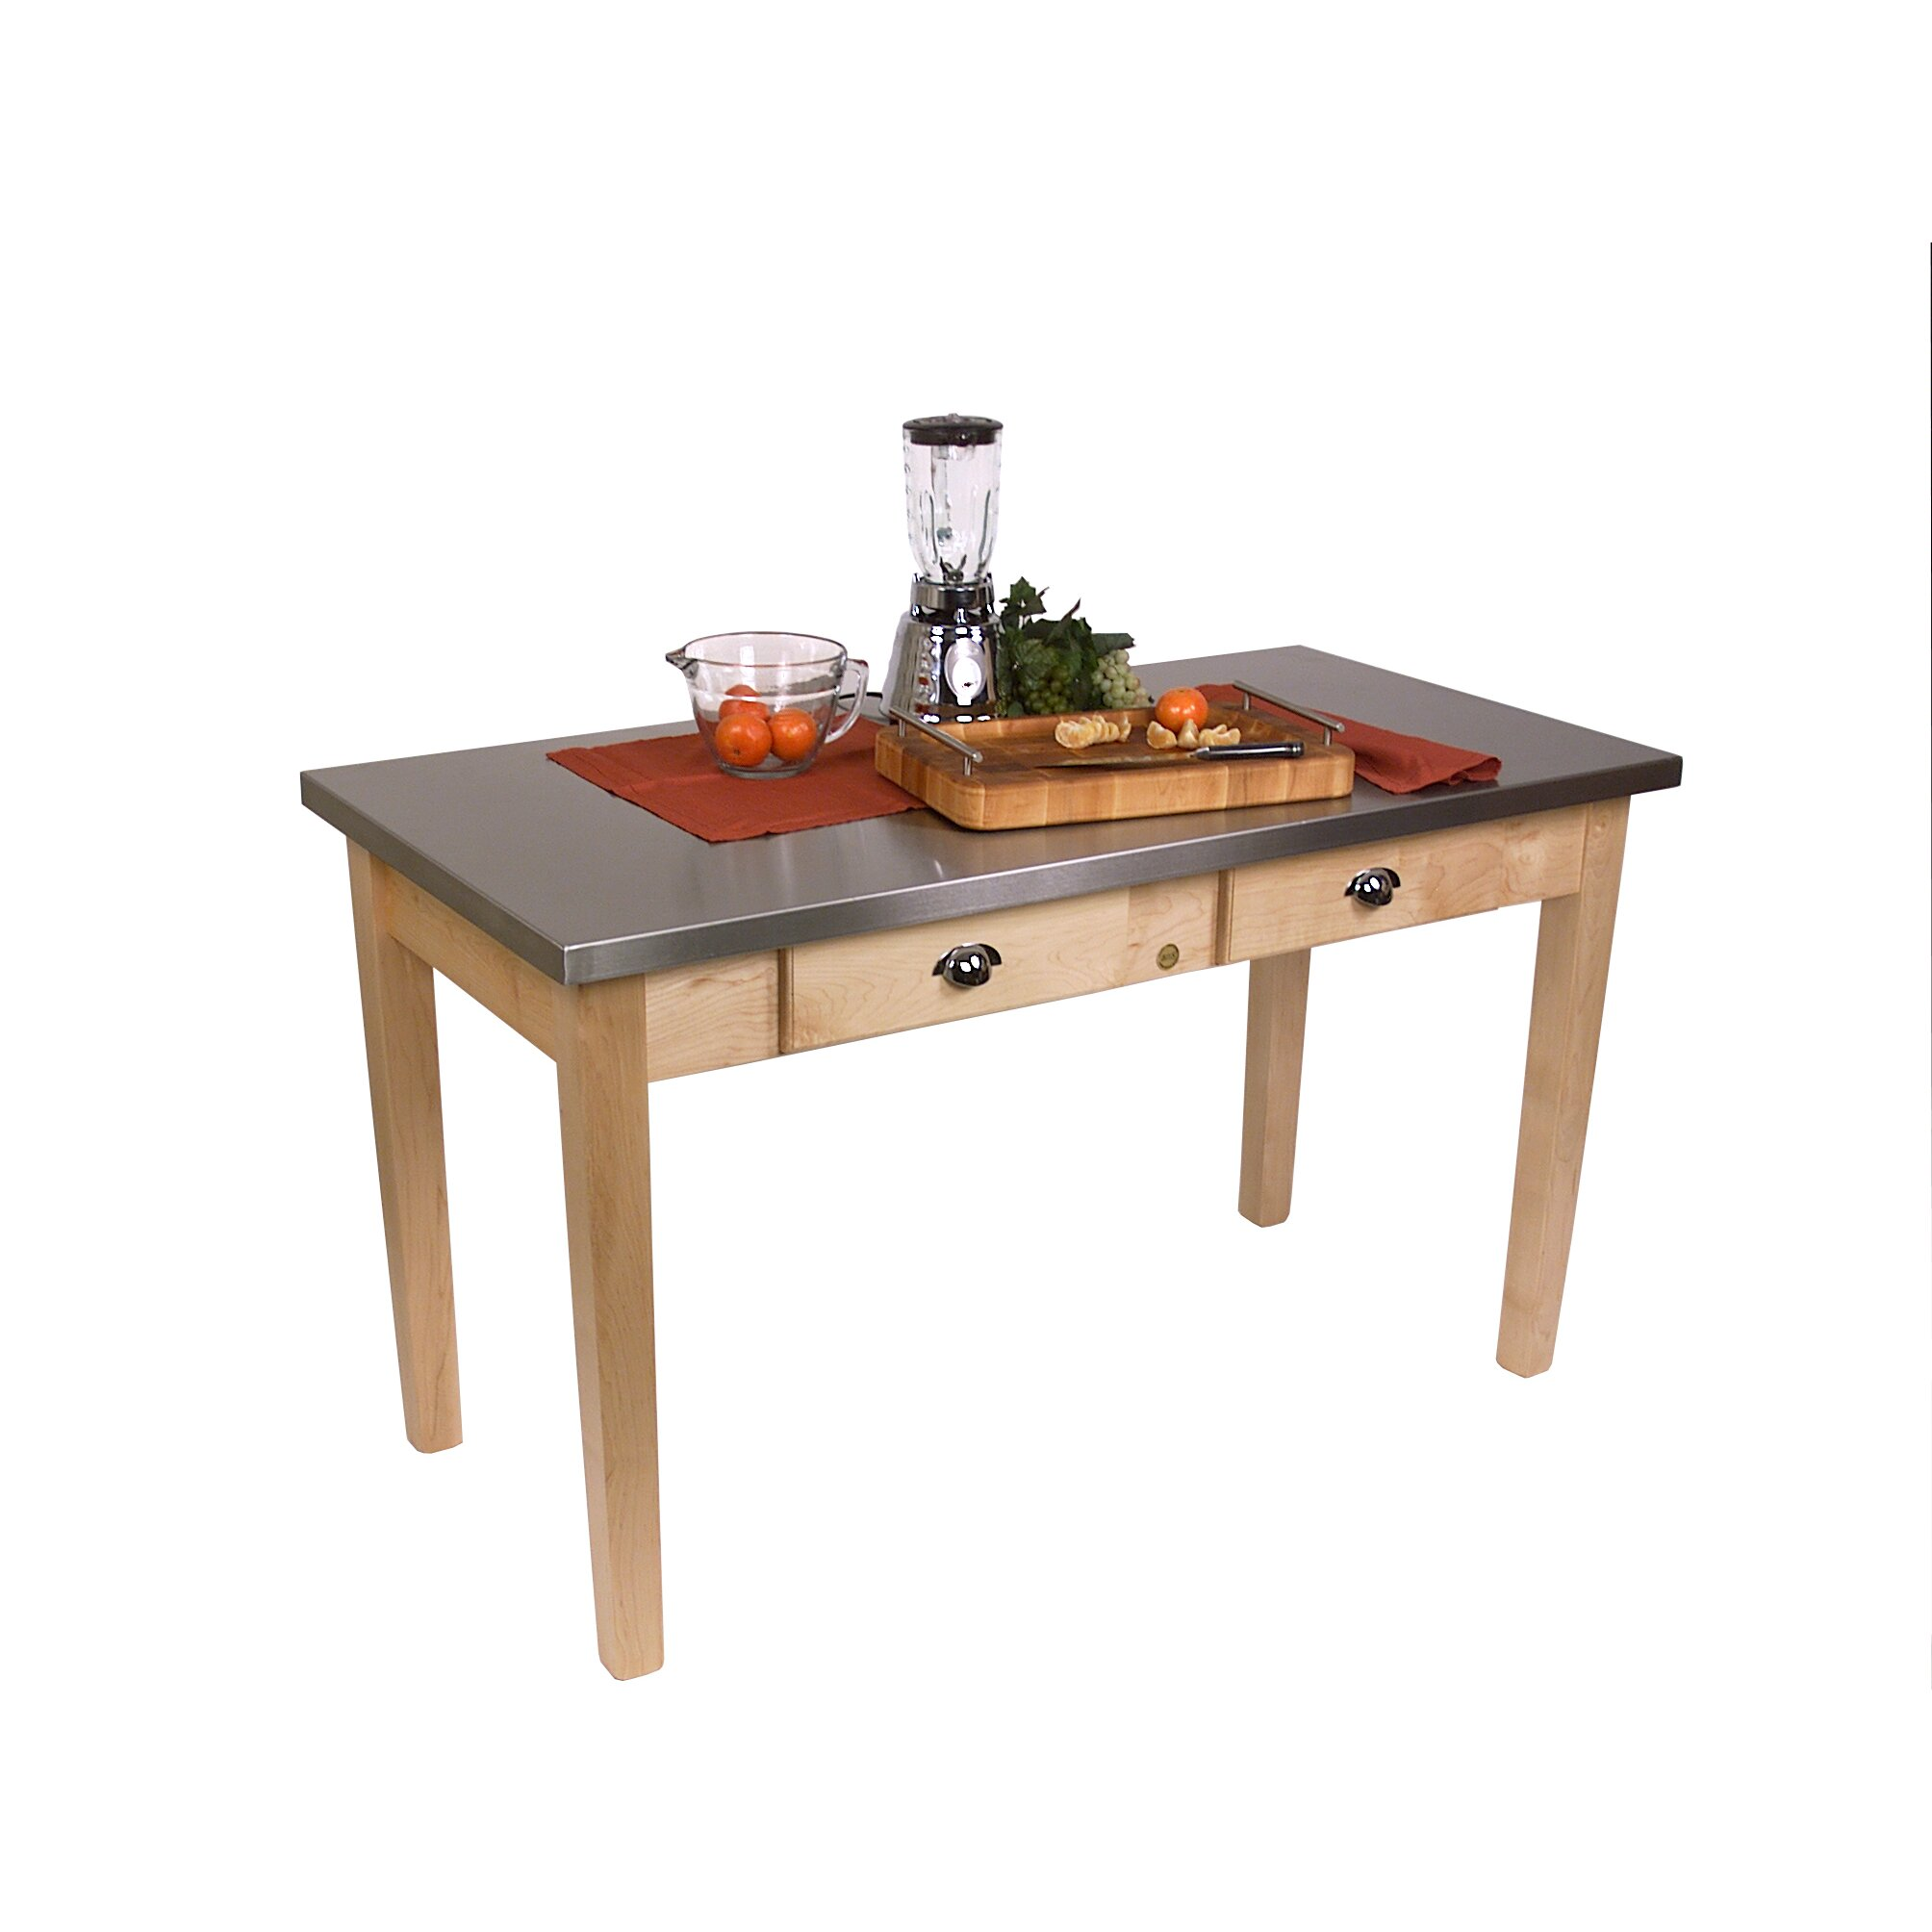 Boos Kitchen Islands Sale John Boos Cucina Americana Prep Table With Stainless Steel